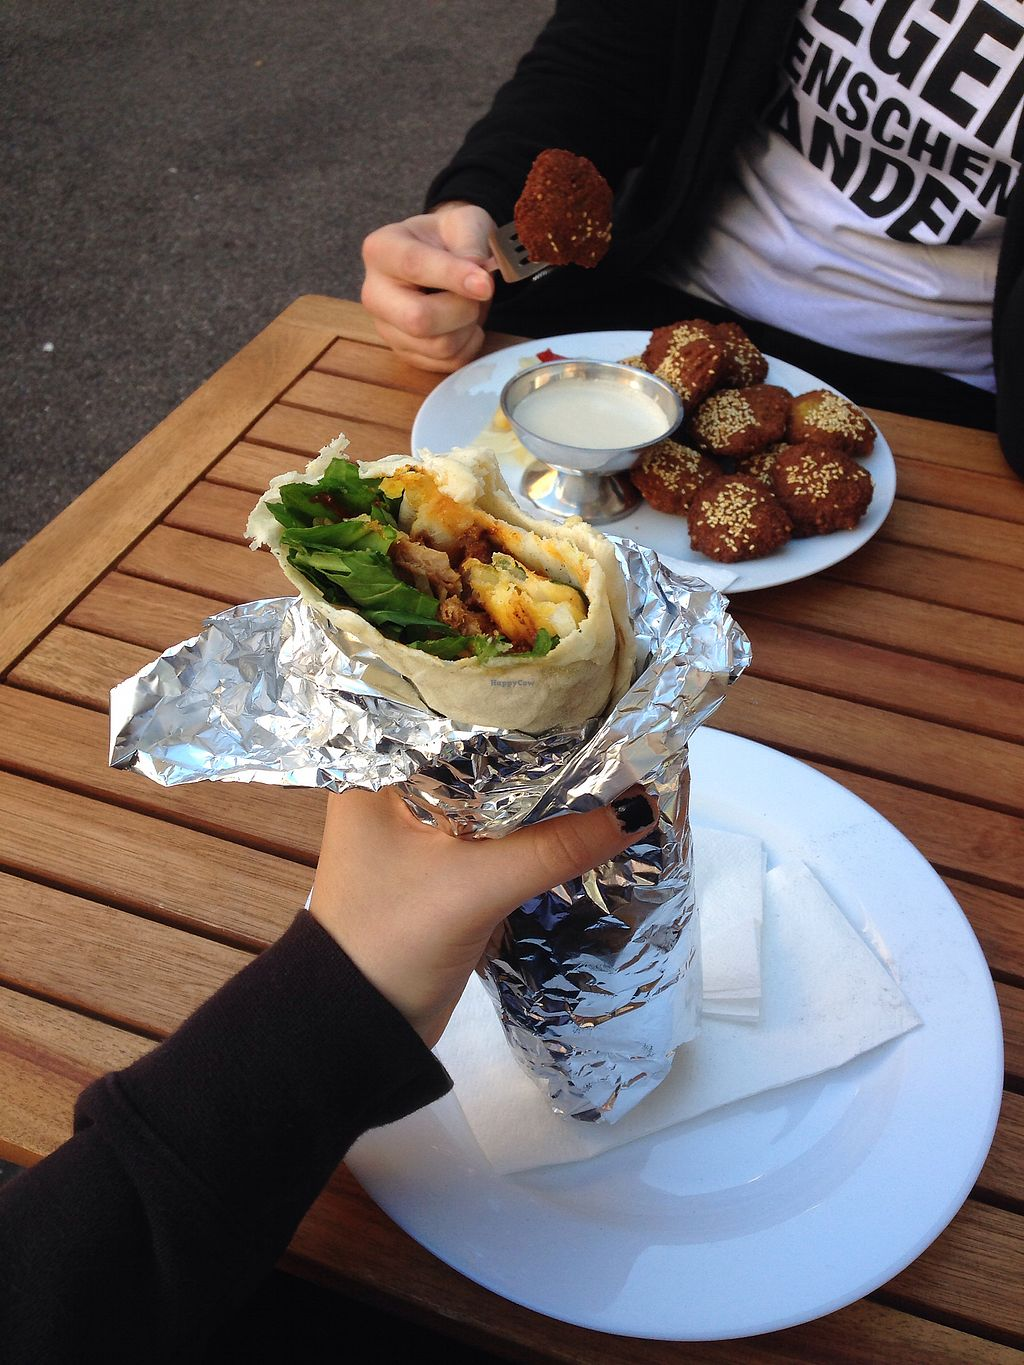 """Photo of Berlin 61  by <a href=""""/members/profile/Sushinina"""">Sushinina</a> <br/>Currywurst Wrap &Falafel <br/> October 28, 2017  - <a href='/contact/abuse/image/93398/319498'>Report</a>"""